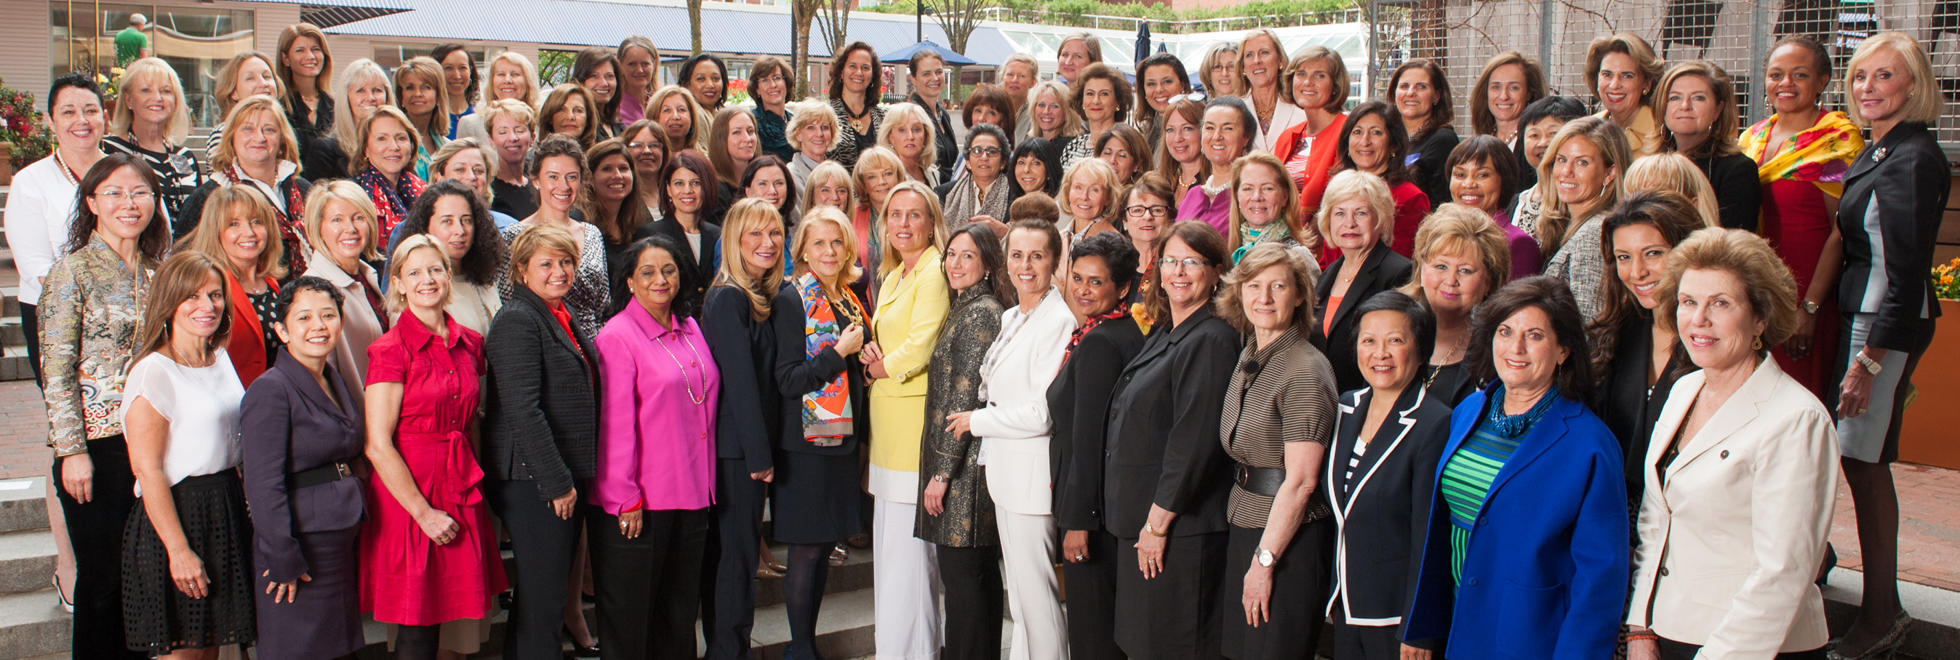 Women's Leadership Board, May 2014